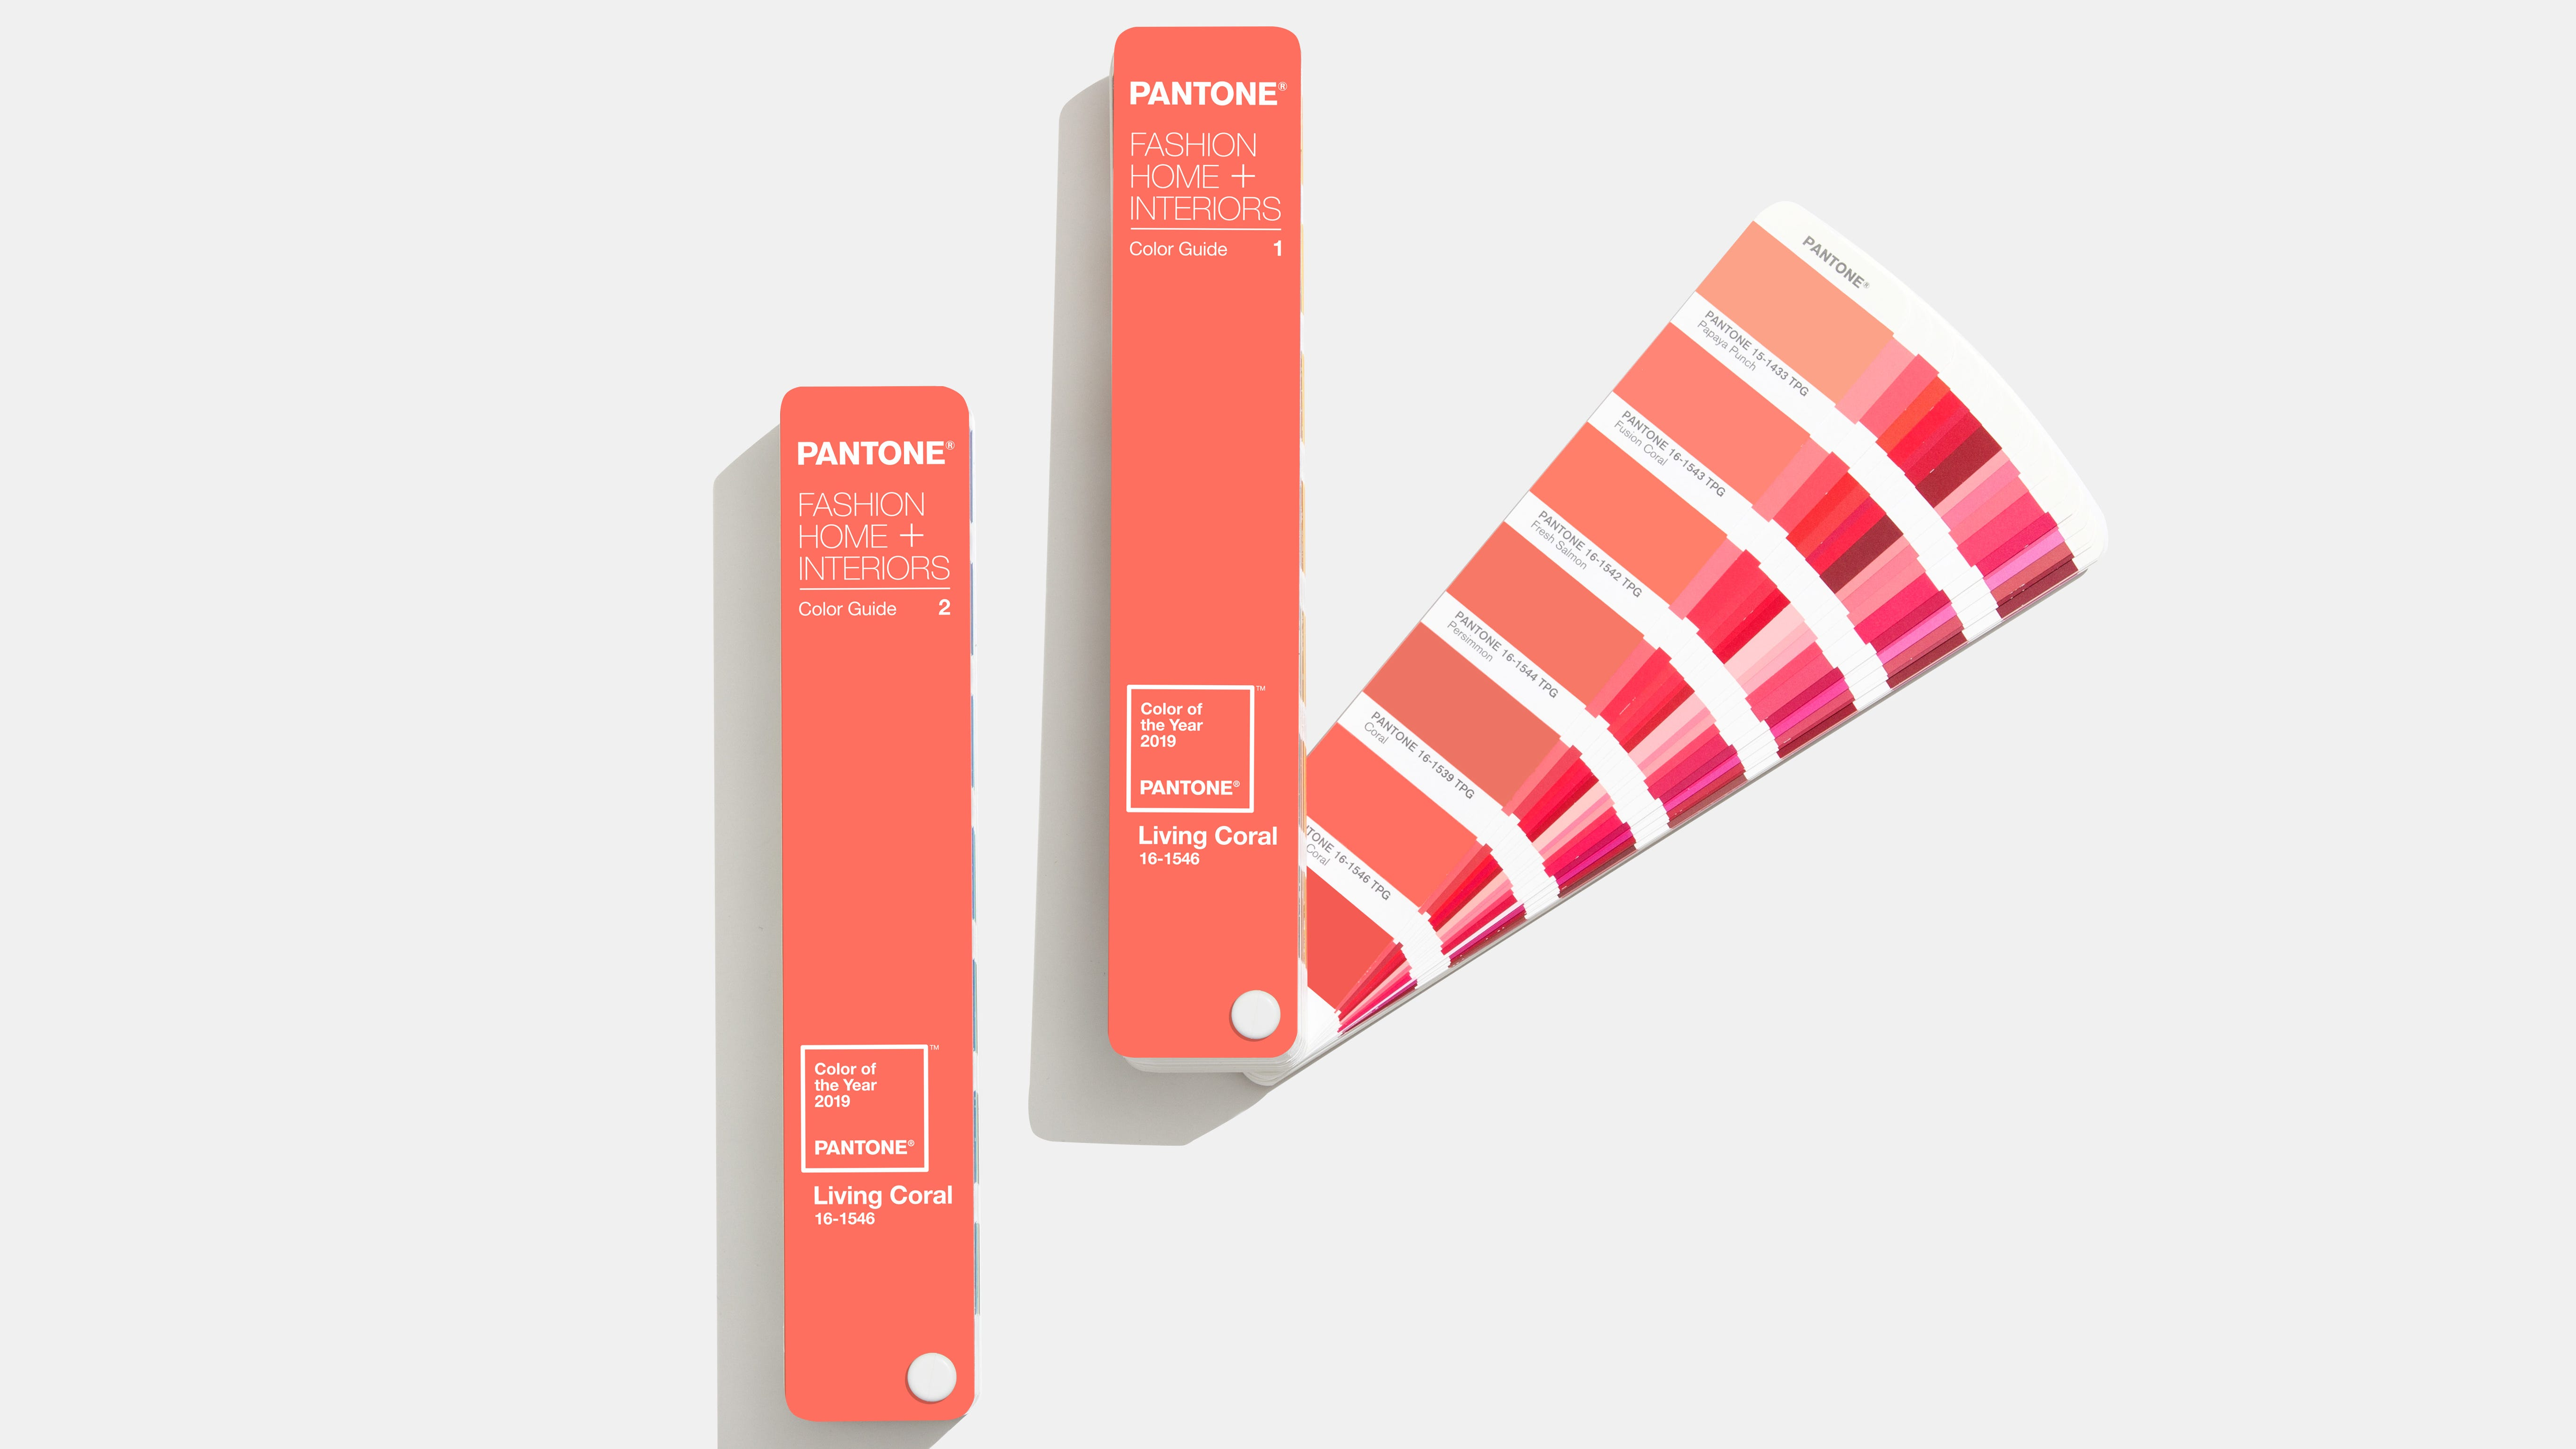 Pantone releases its Color of the Year for 2019: Living Coral